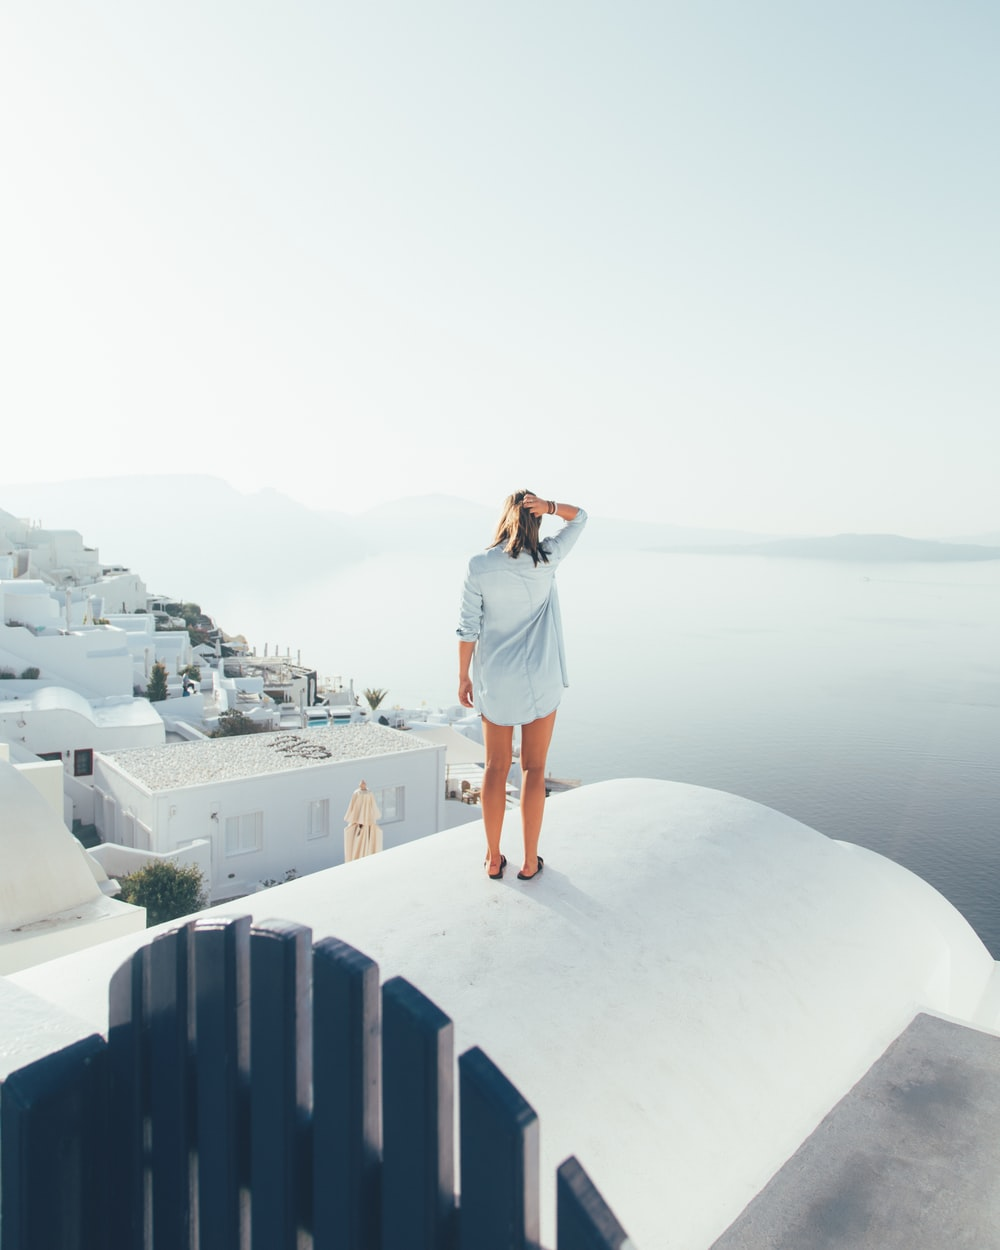 woman standing on concrete surface looking forward on sea